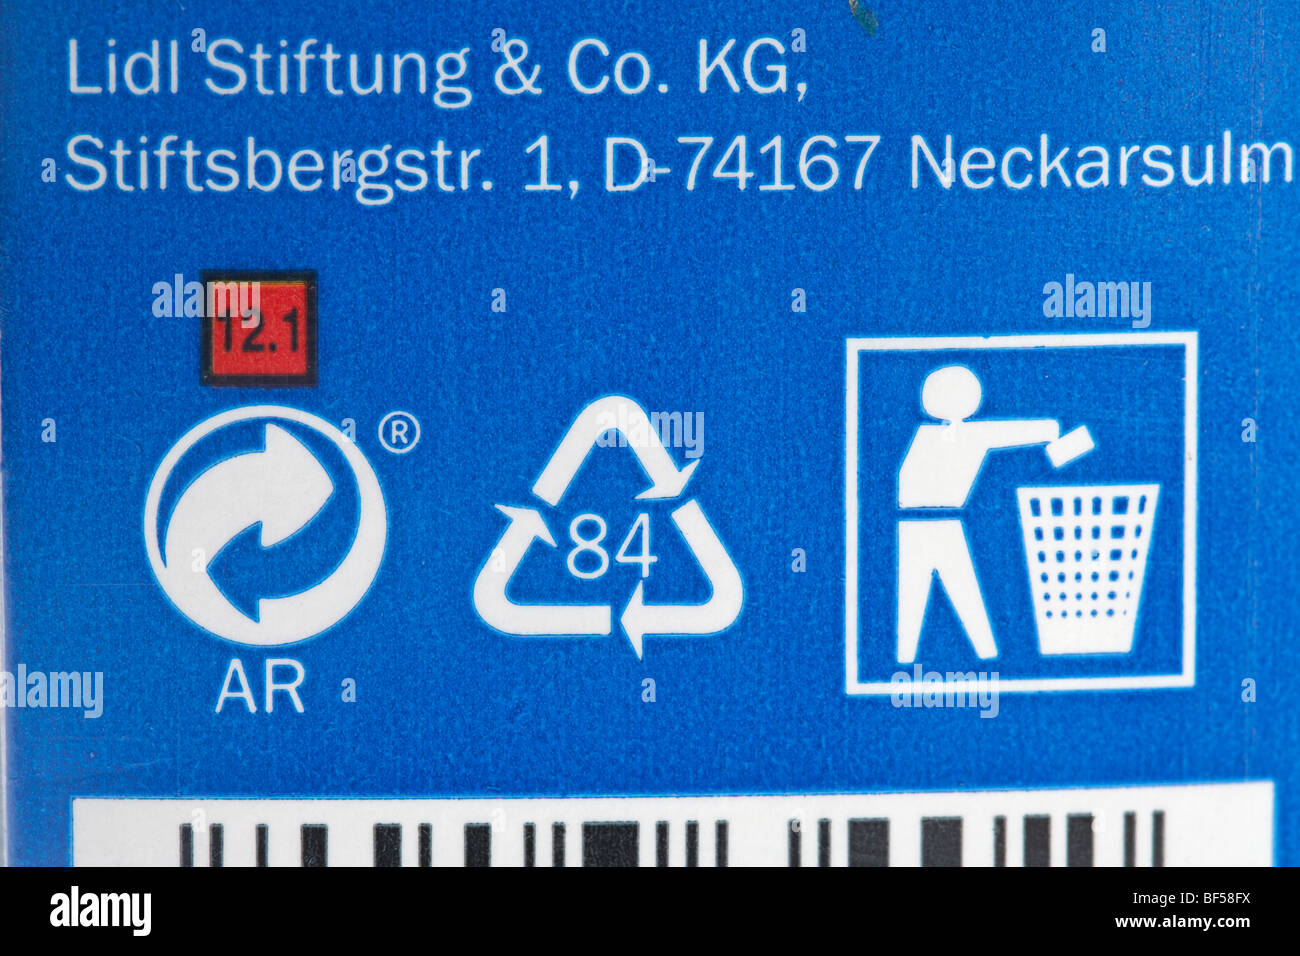 Recycling Symbols On Product Packaging Stock Photos Recycling